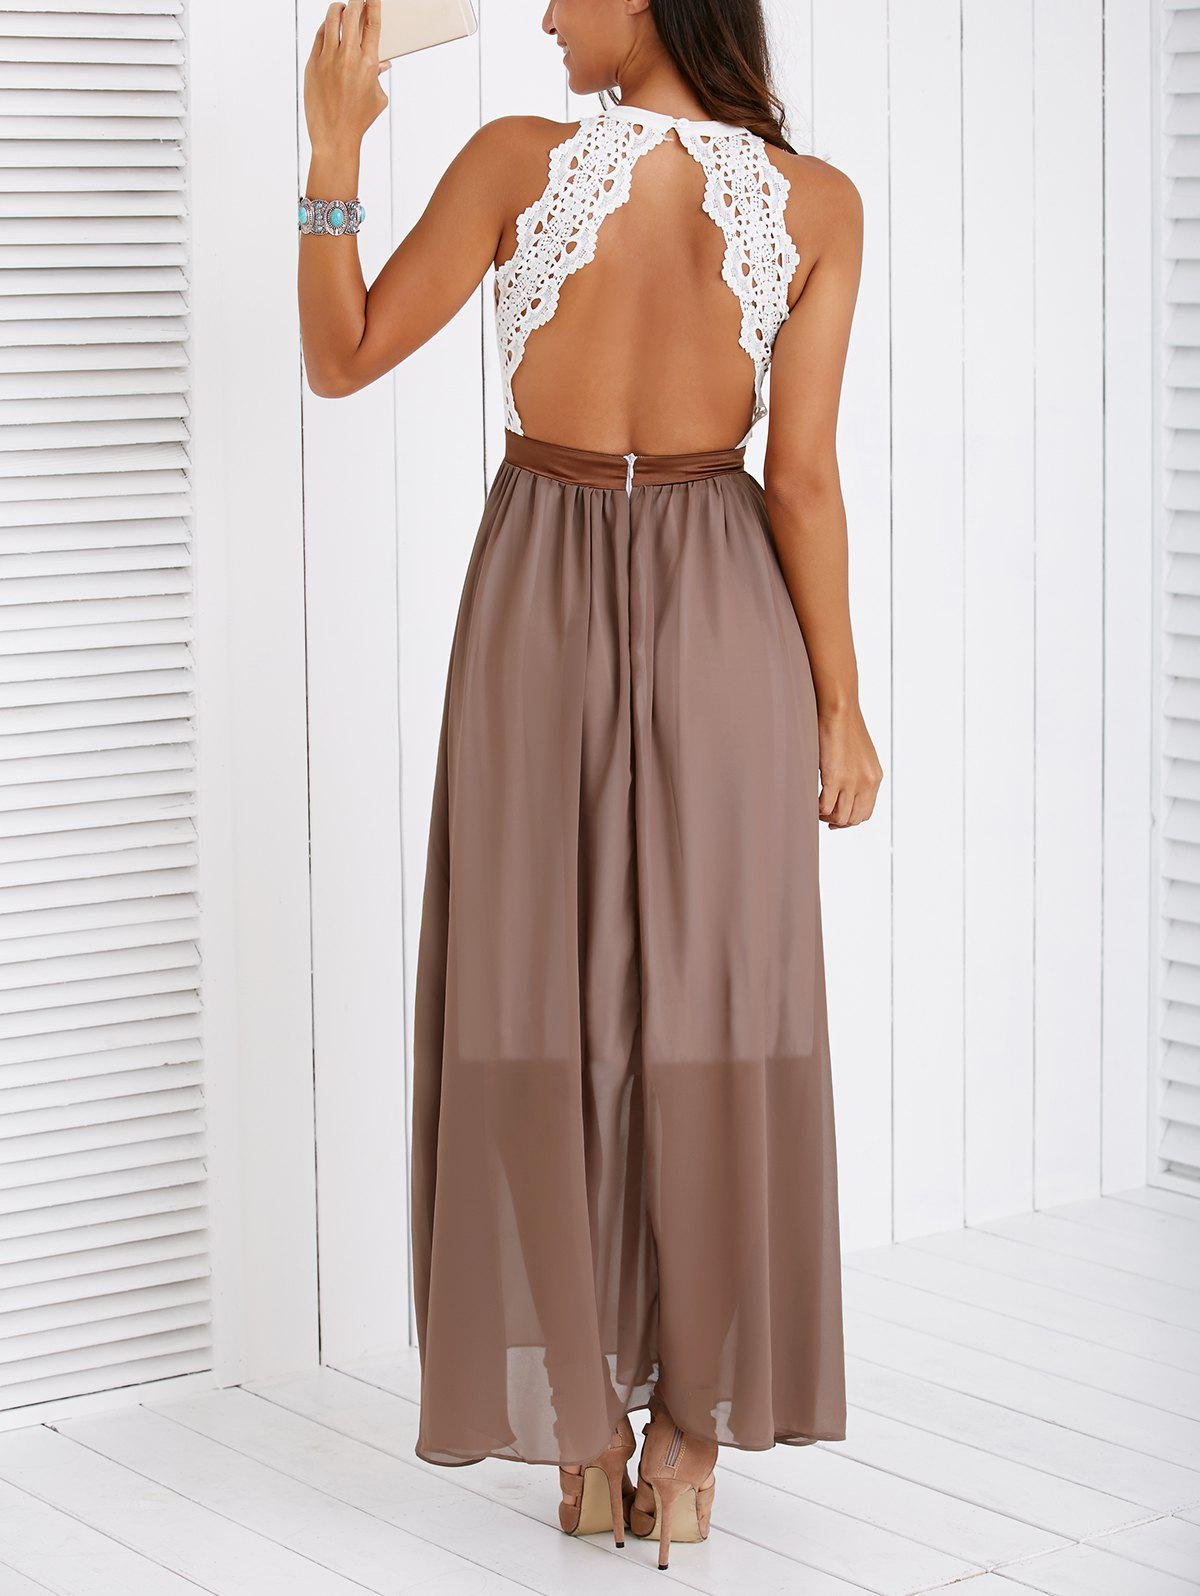 Fashionable Lace Spliced Backless Maxi Dress - KHAKI XL